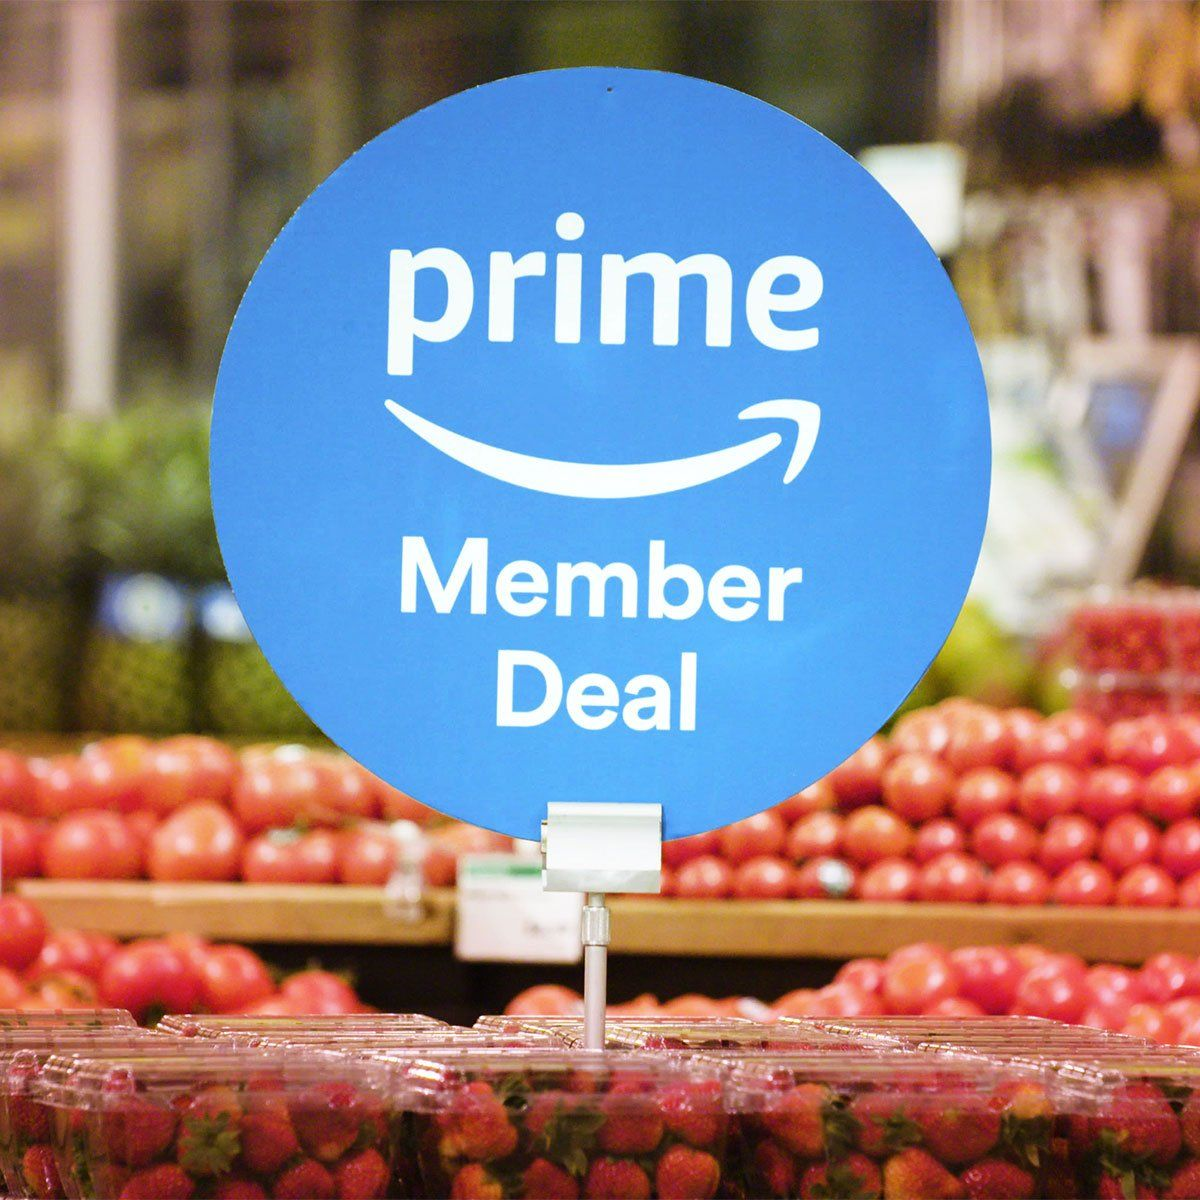 New Benefit For Prime Members At Whole Foods Market Whole Food Recipes Whole Foods Market Food